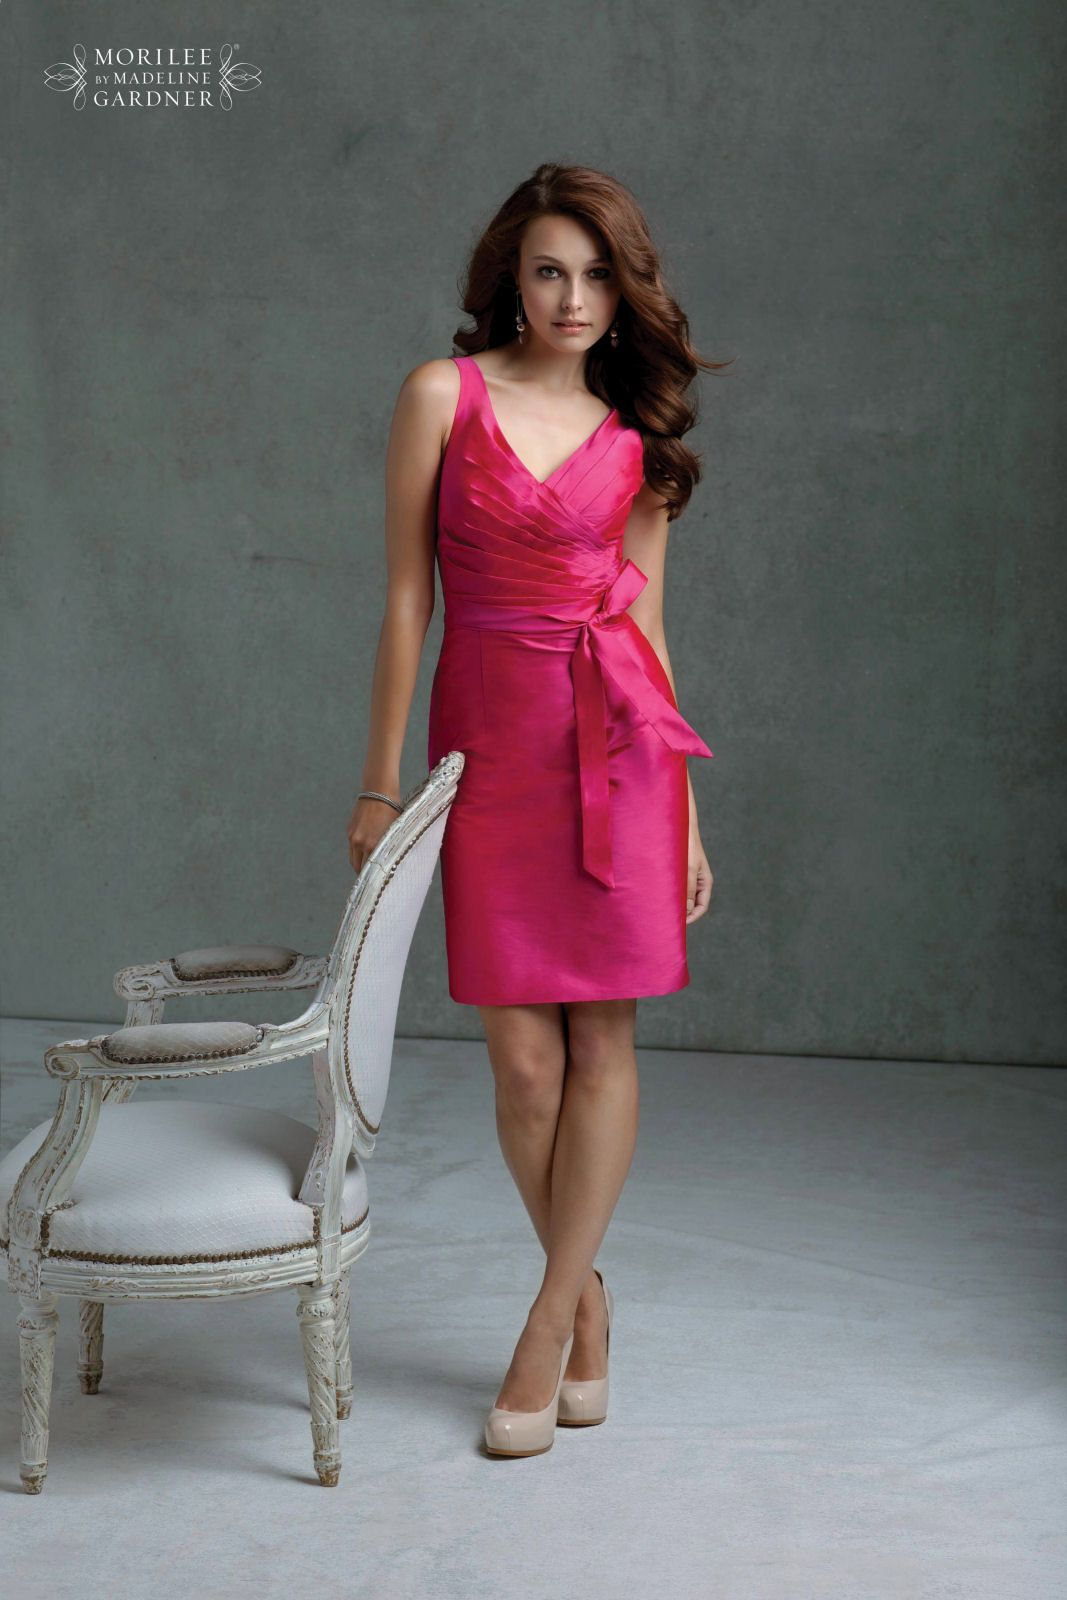 We love this kneelength pink bridesmaid dress with a crossover